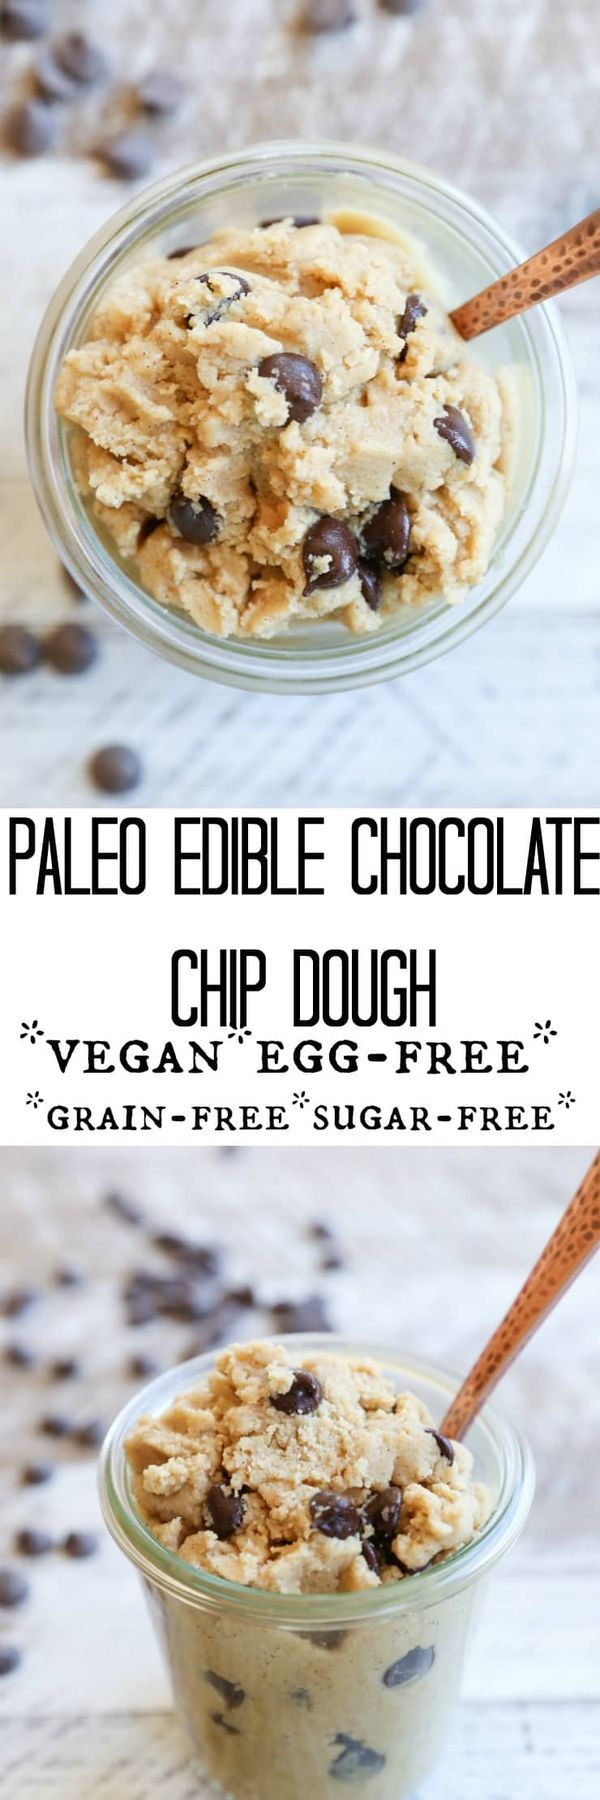 If you've been looking for a health for you edible chocolate chip cookie dough, then you'll want to make this yummy Paleo Chocolate Chip Edible Cookie Dough dessert recipe that is also vegan and gluten-free!